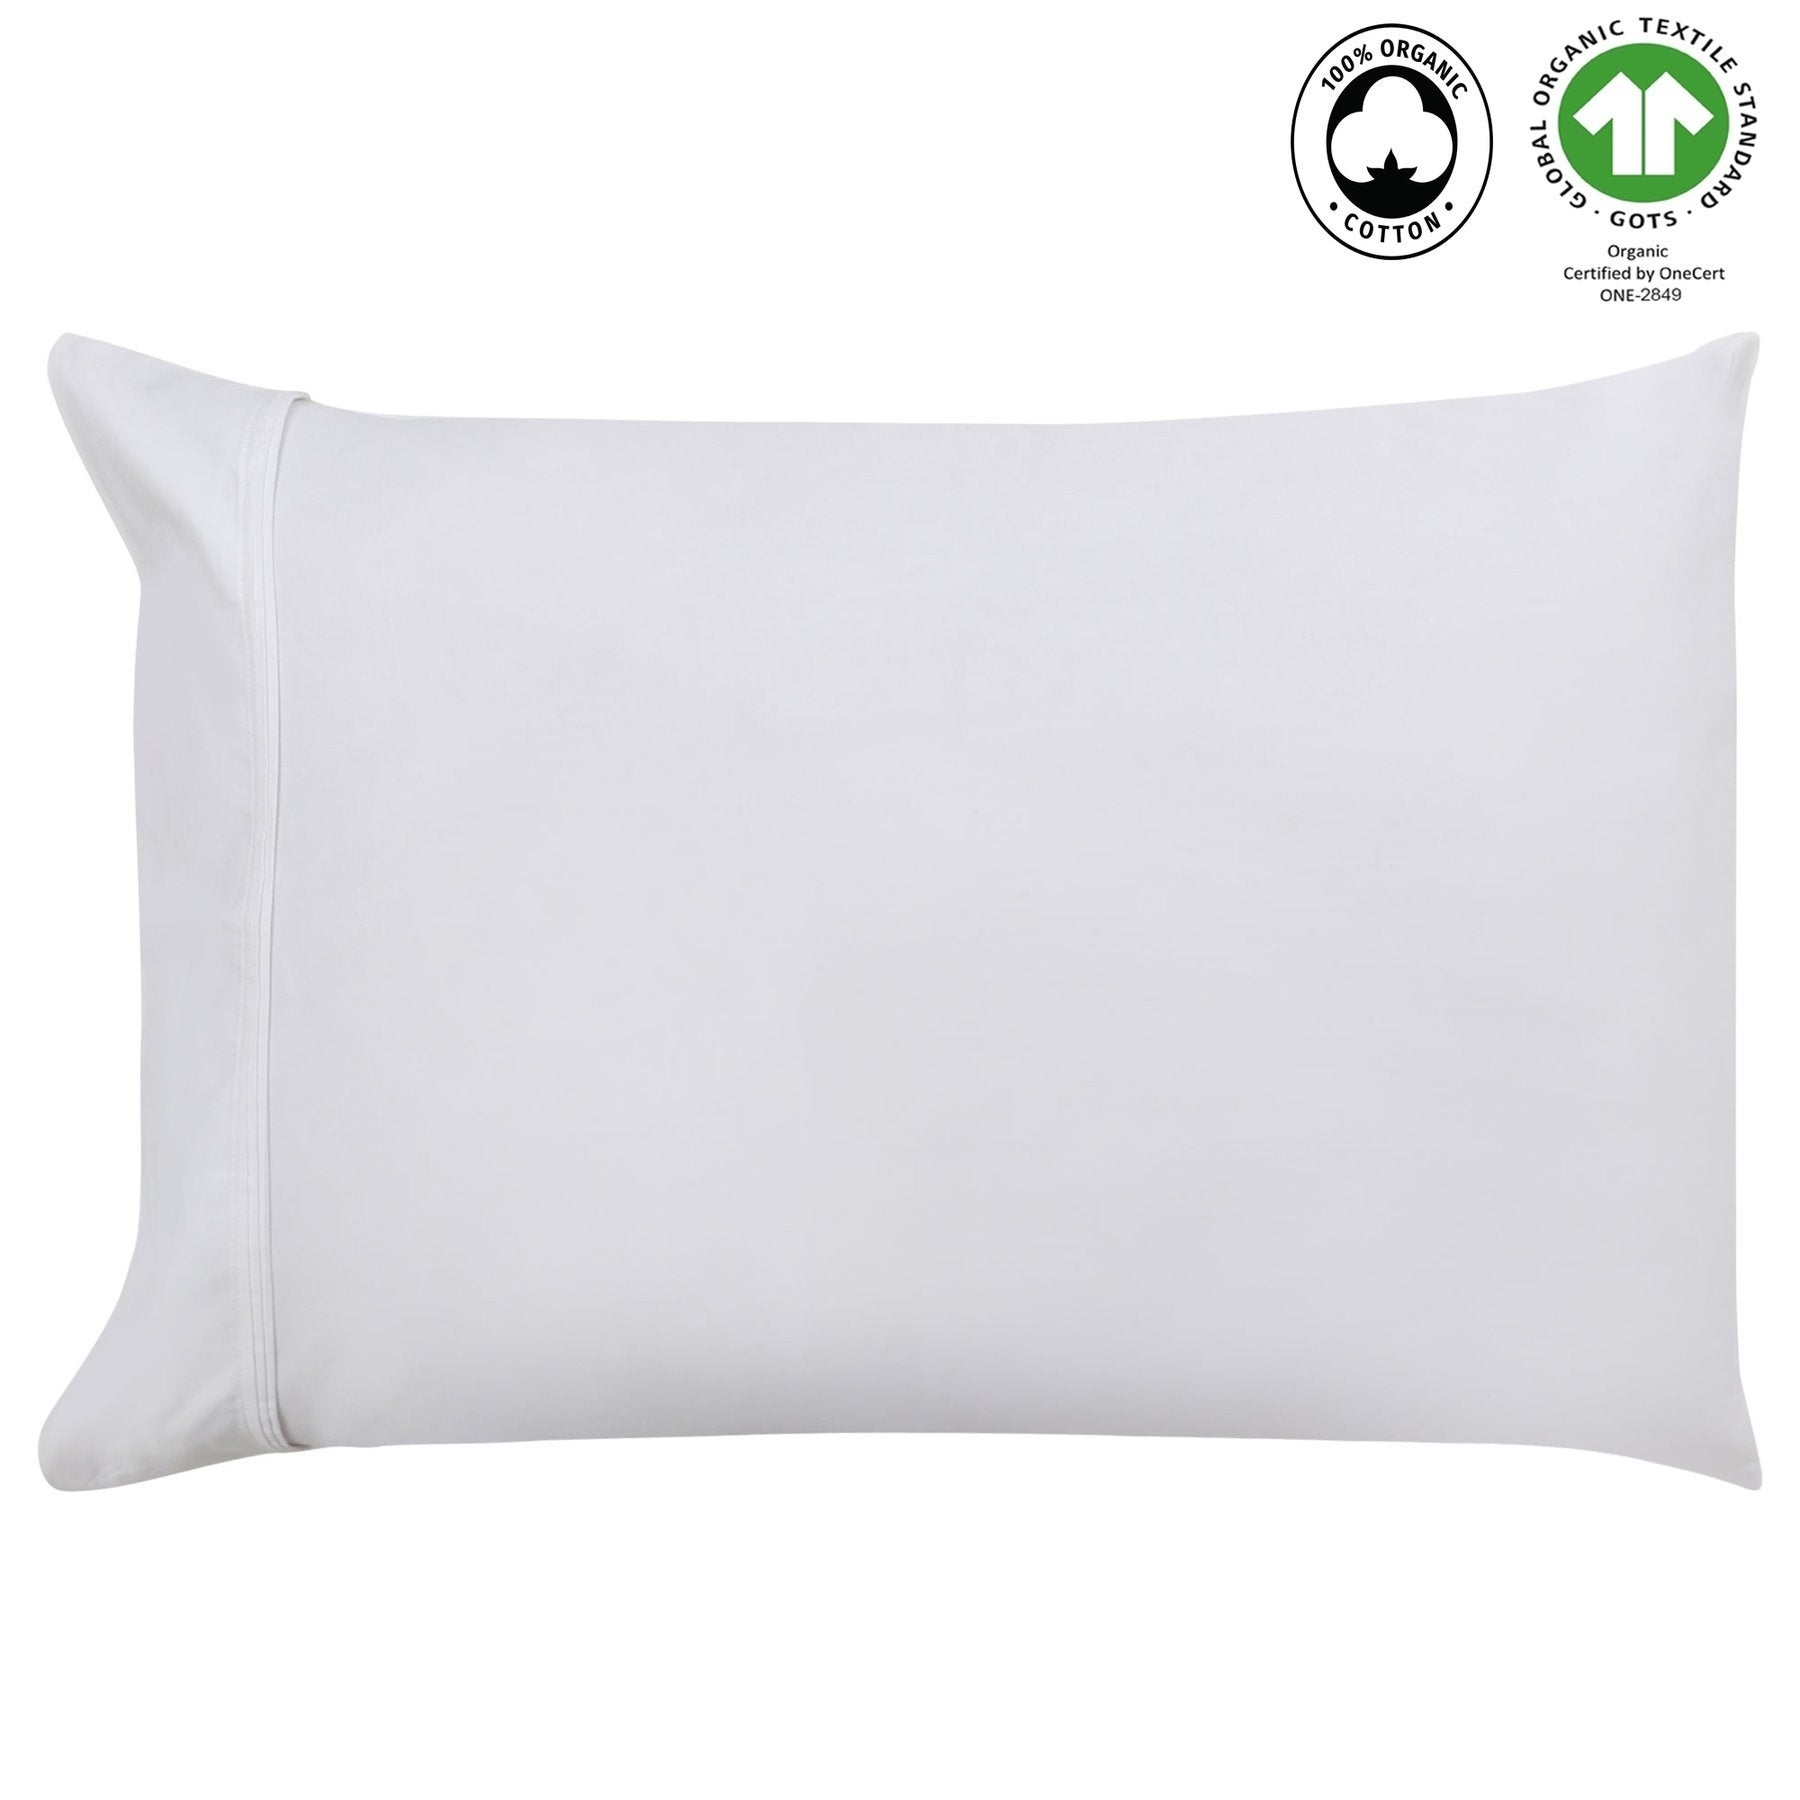 pair 300 Thread Count Wrinkle Resistant Cotton Pillowcases